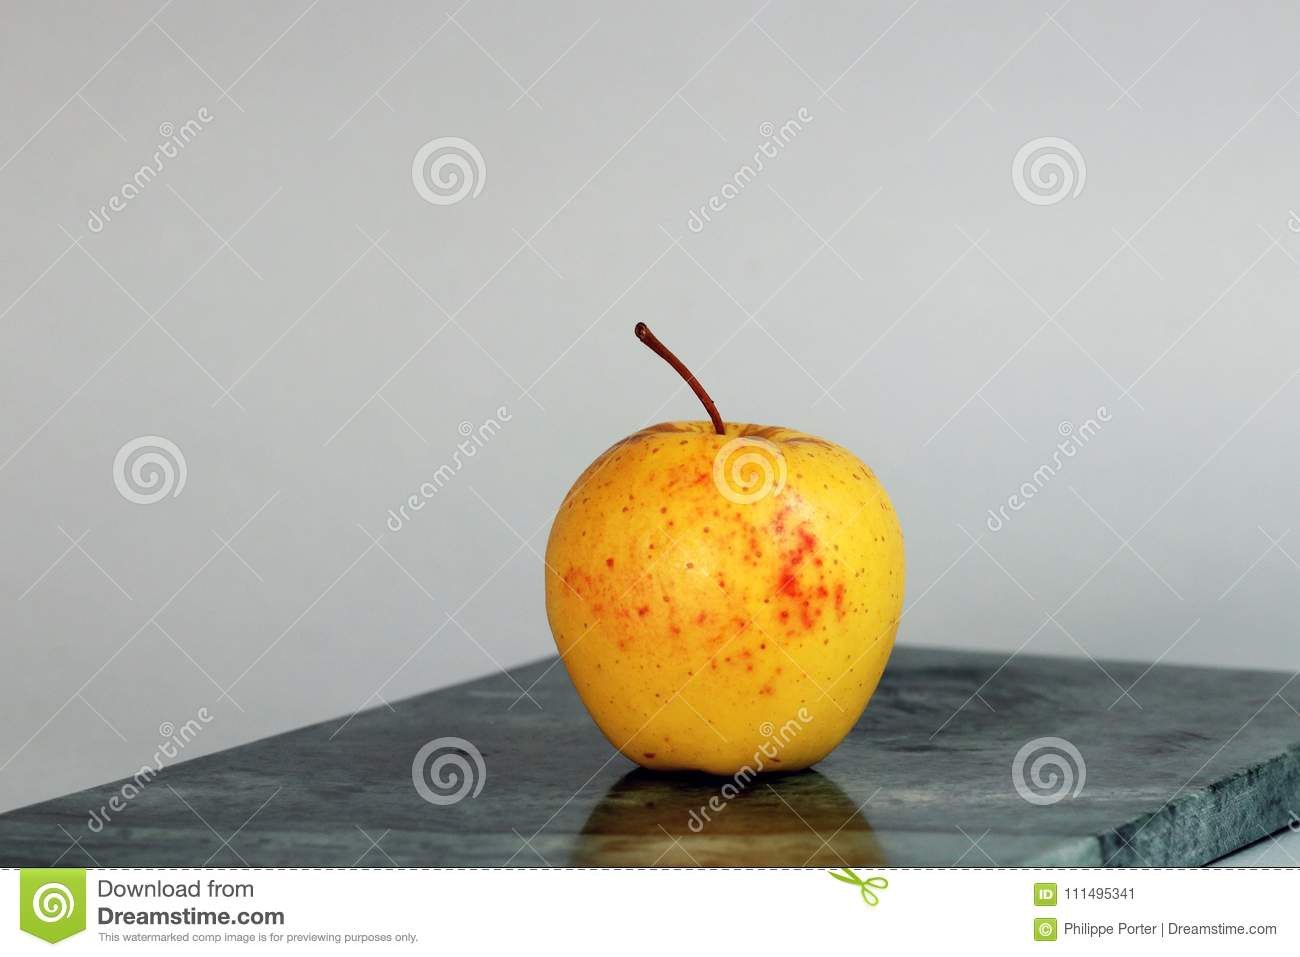 Just An Isolated Organic Apple With Red Spots Waiting For Adam And Eve.  Dilemma In Urban Garden Of Eden. Where Are The Millenials Snakes ?